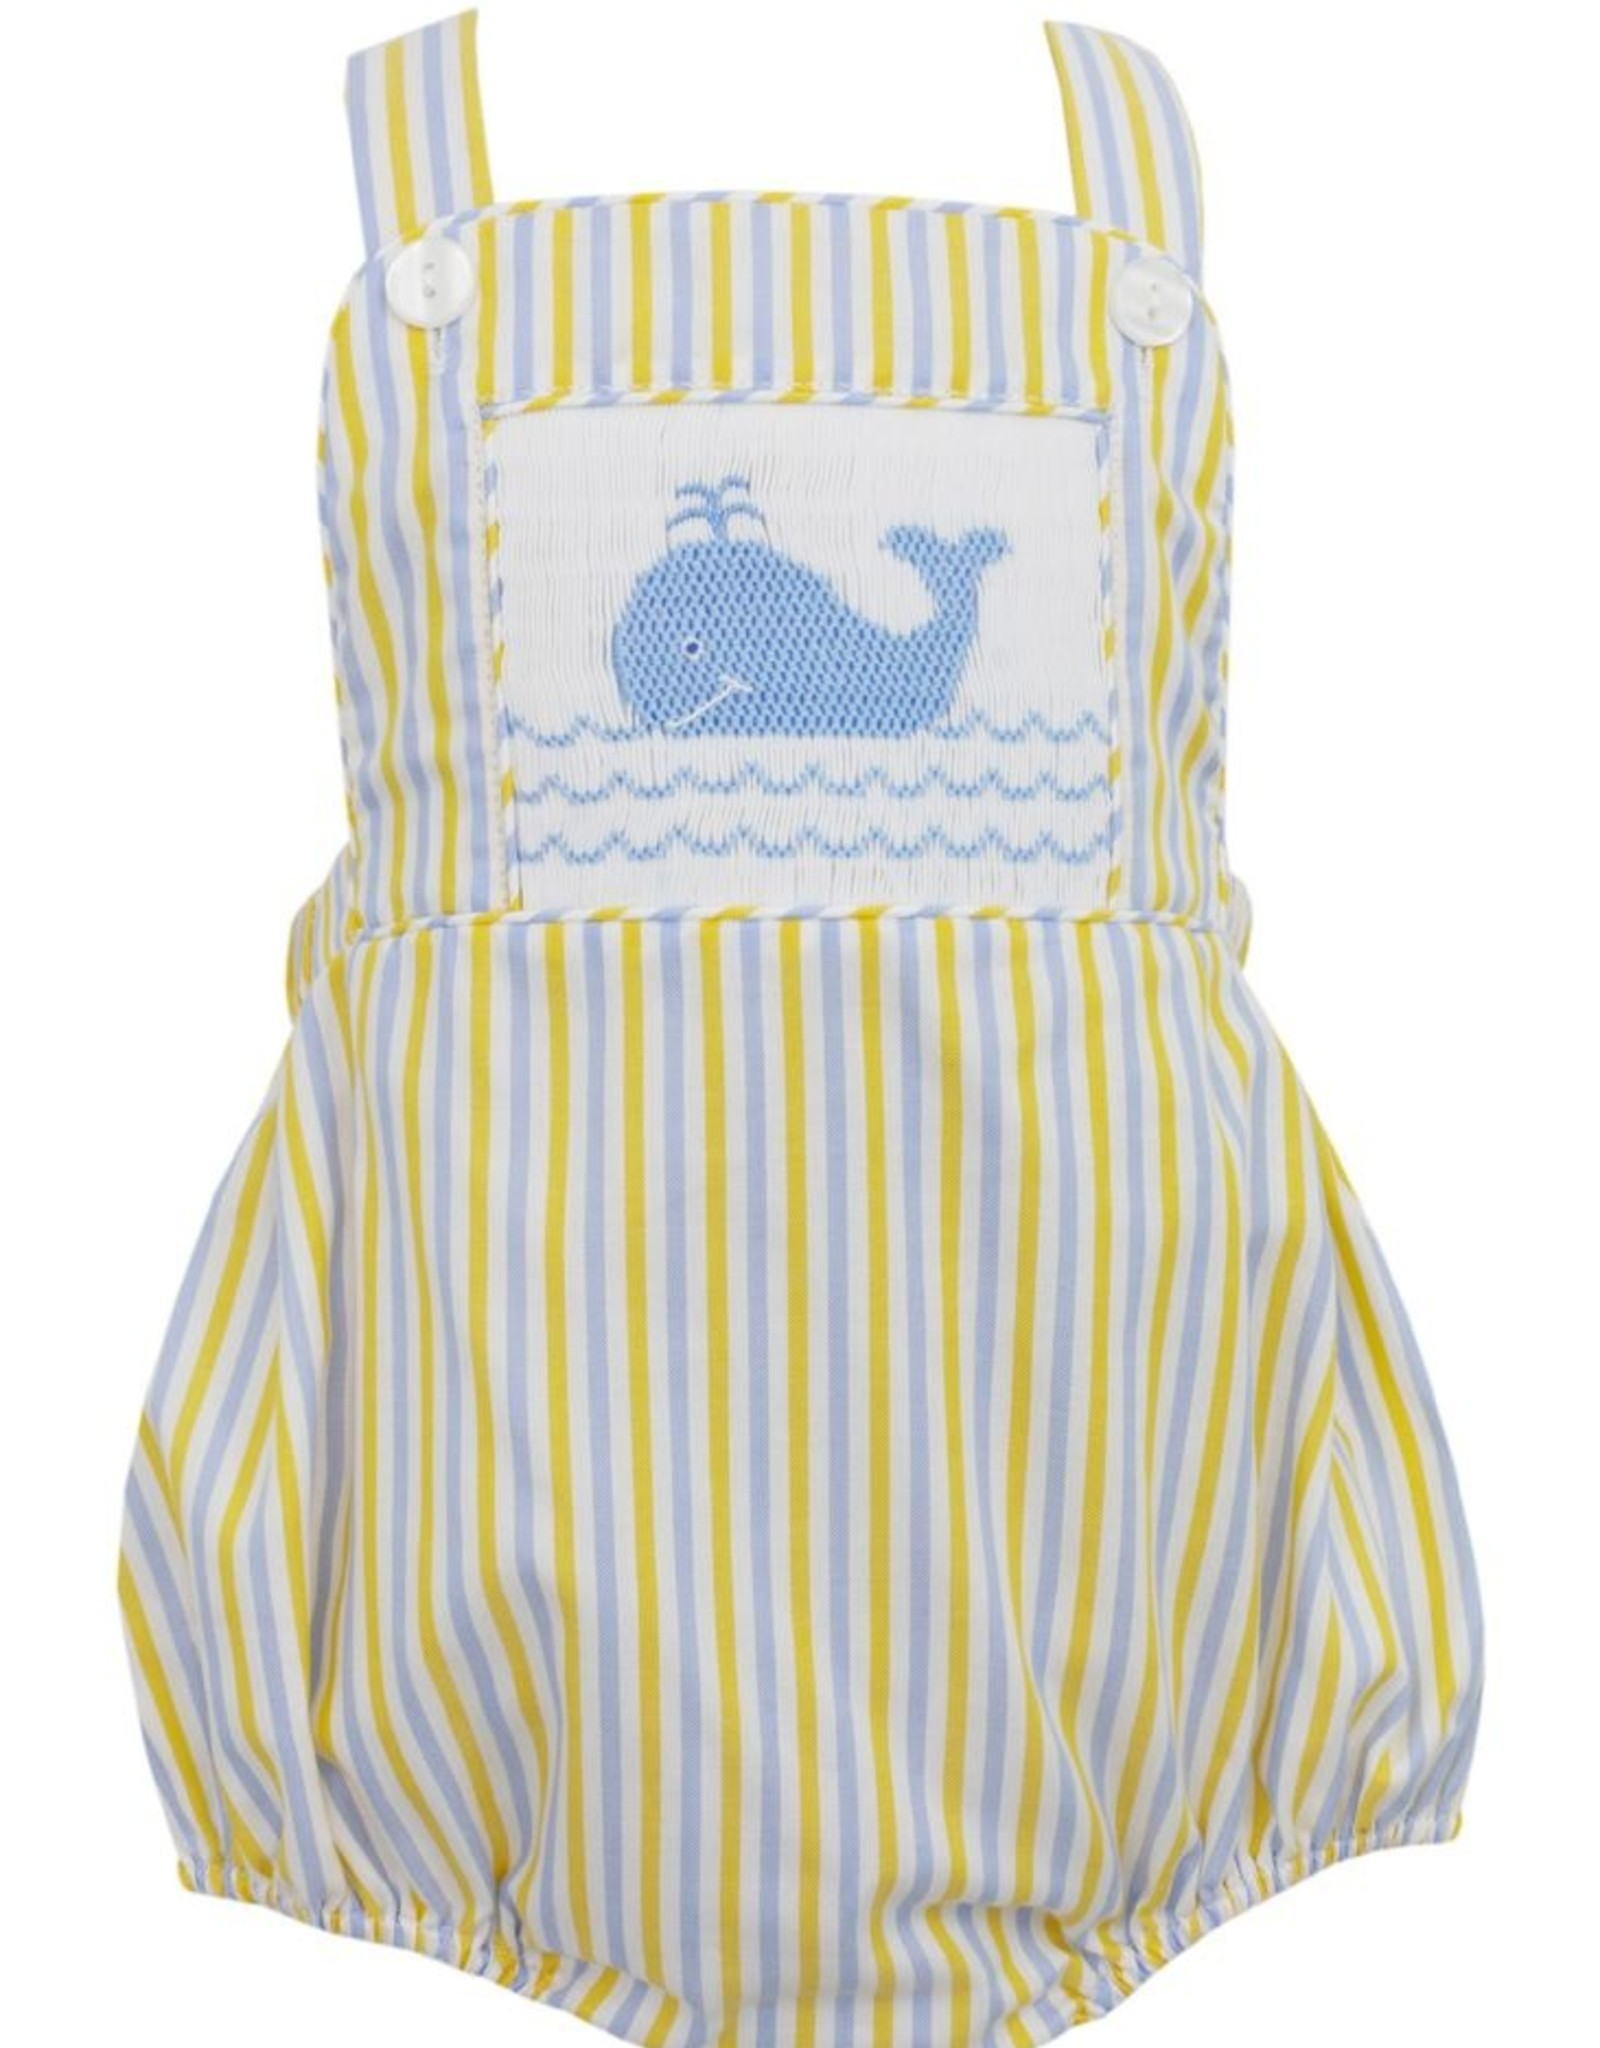 Anavini Boys Yellow / Blue Striped Smocked Whale Bubble